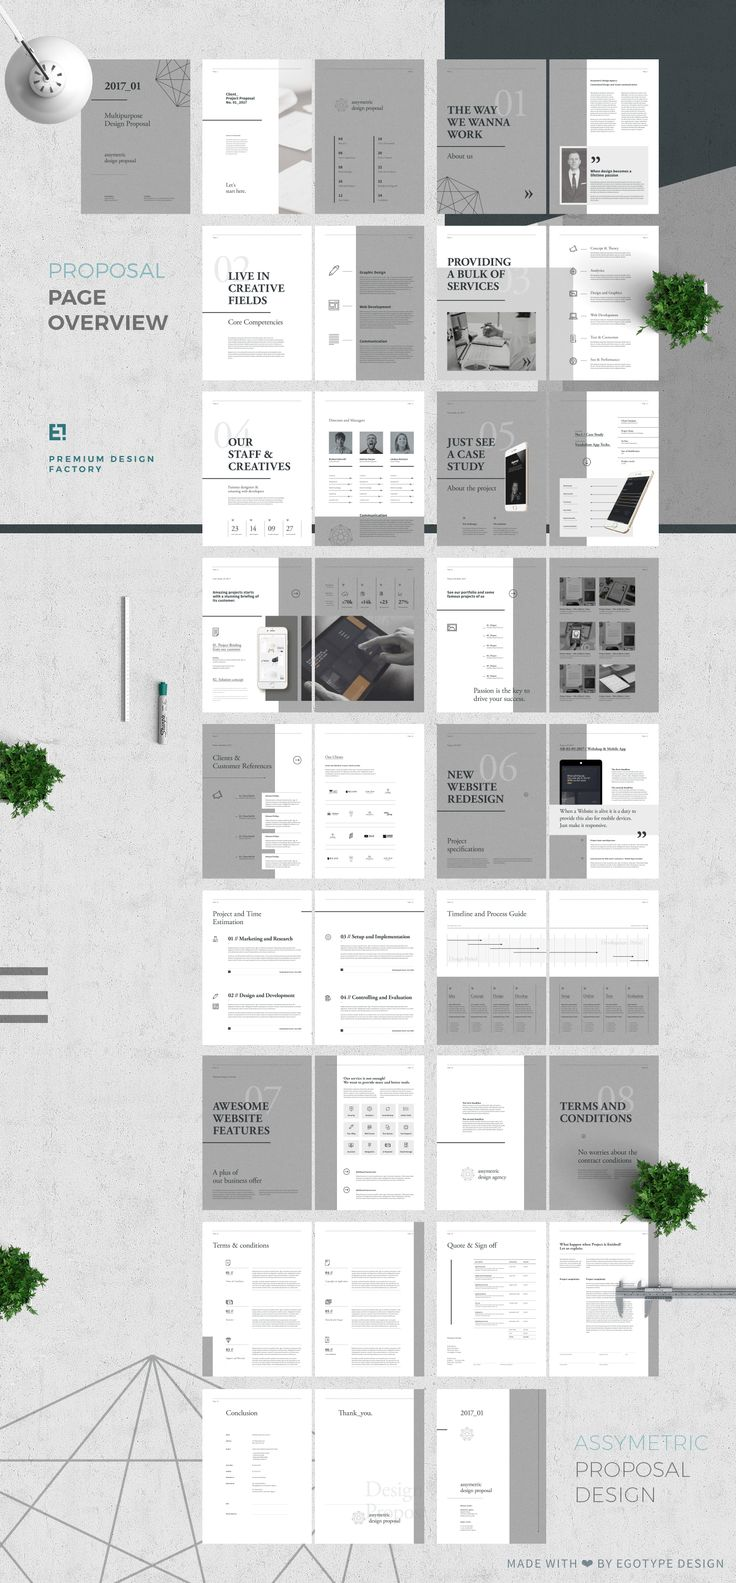 Find This Pin And More On Contract/proposal Layouts By Arodriguez2208.